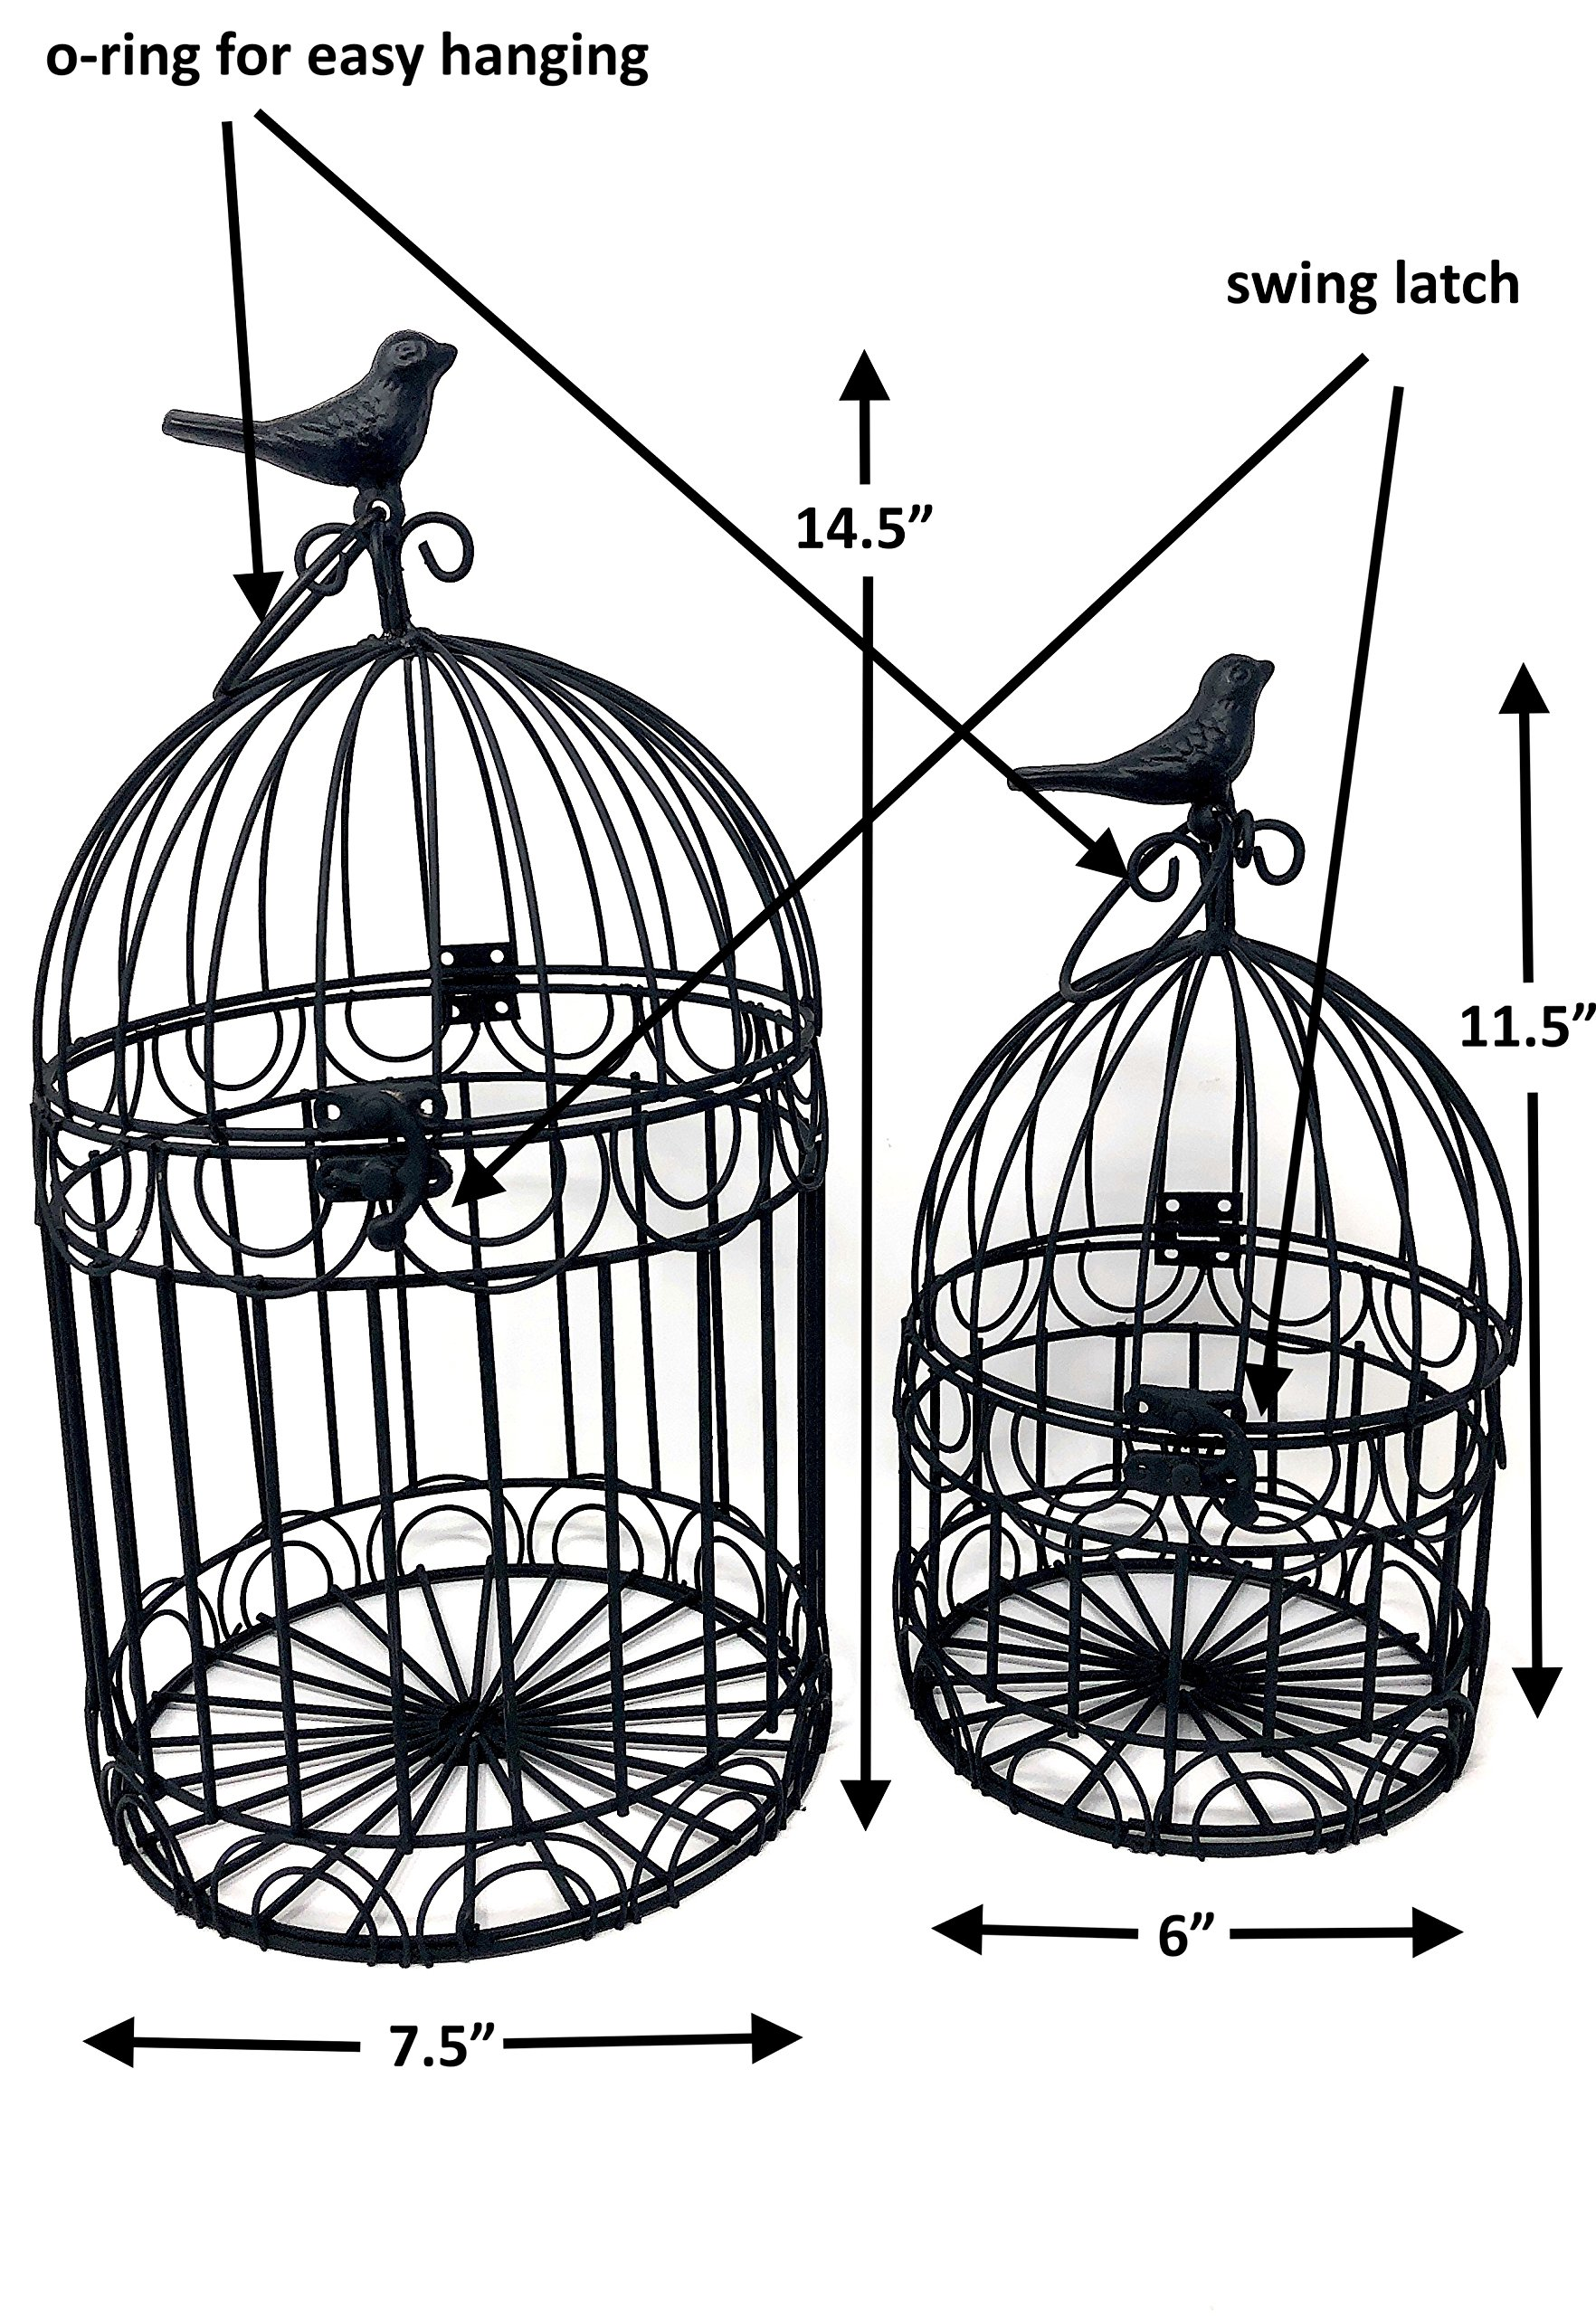 Decorative Bird Cages Wedding Reception Gift Card Holder Centerpiece Garden Ornaments Set of 2 (Black)